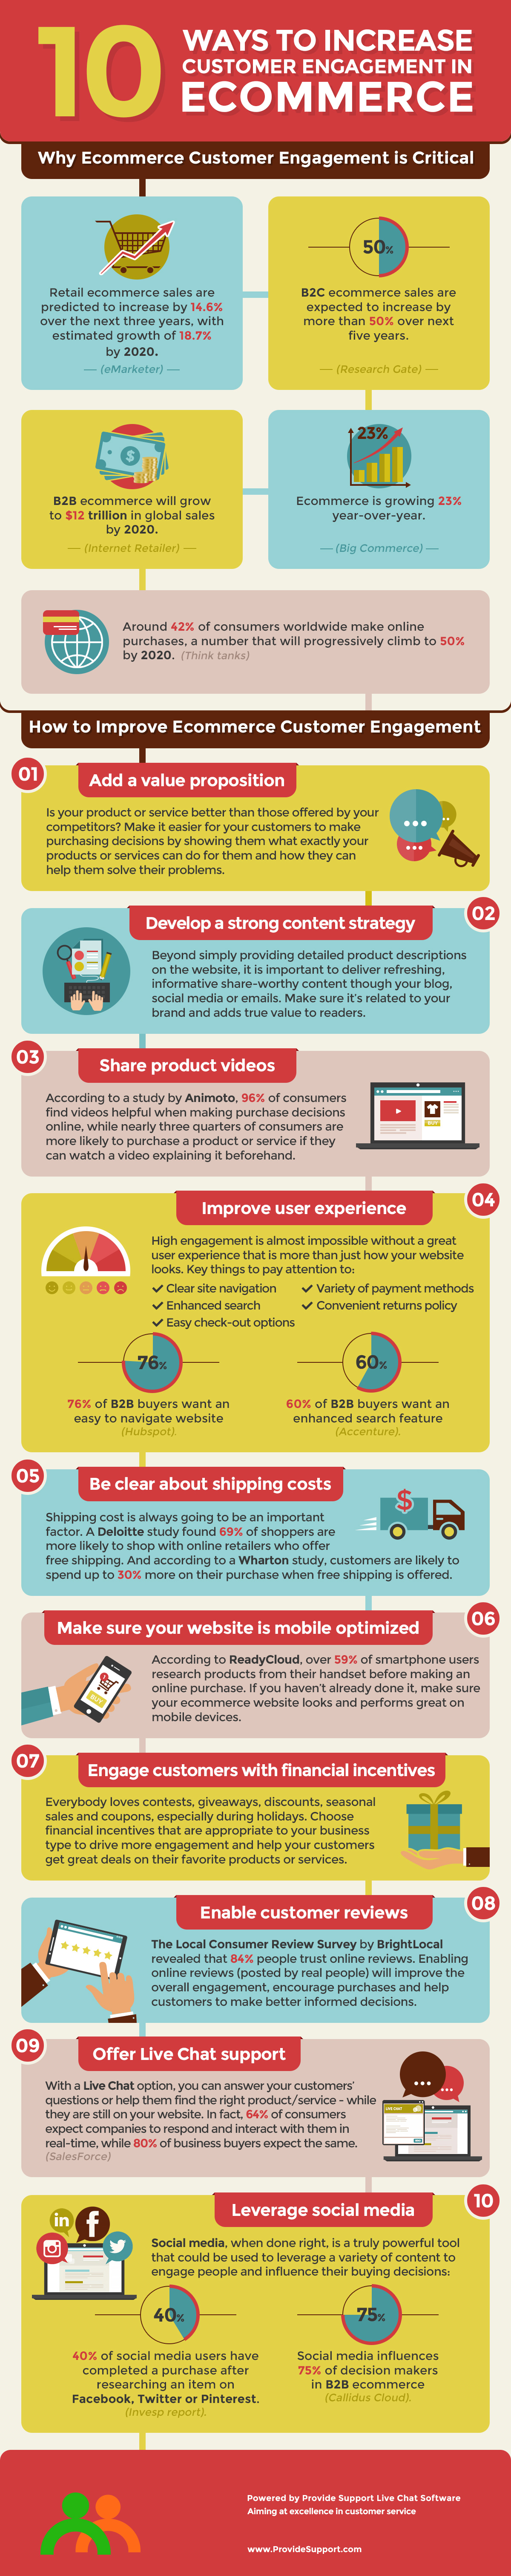 10 Ways to Increase Customer Engagement in eCommerce  [Inforgraphic from Provide Support]